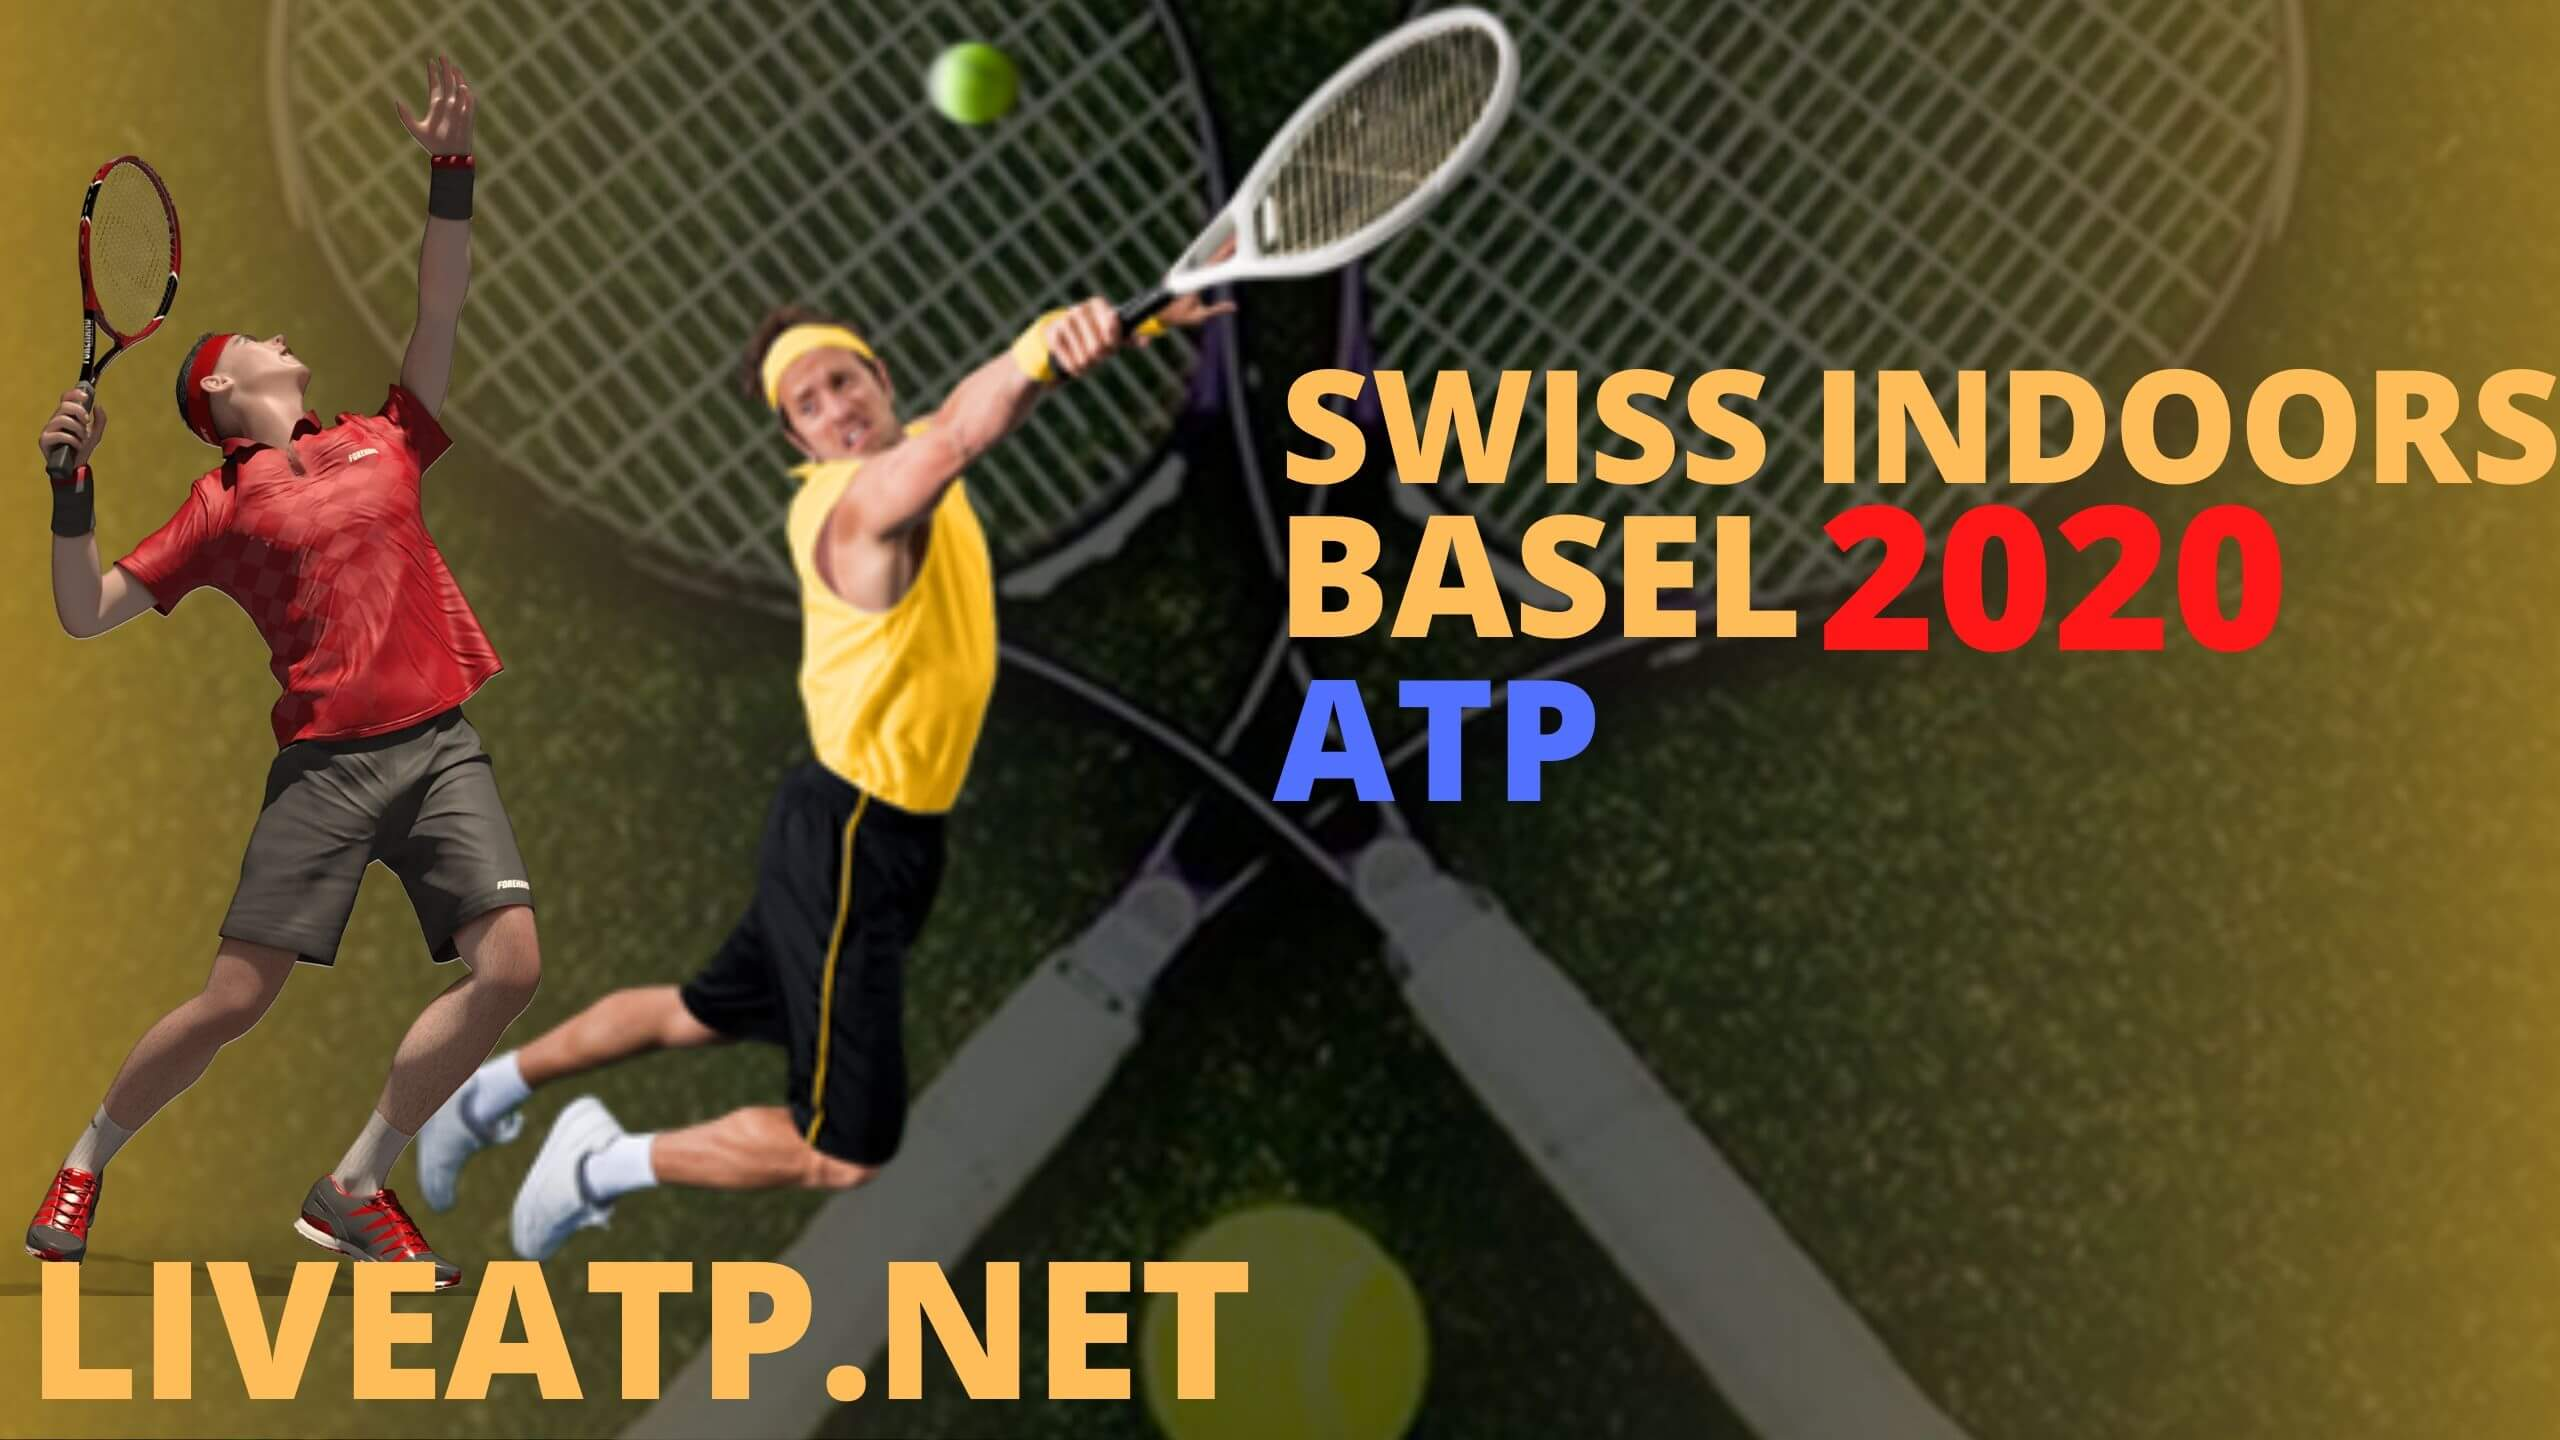 Swiss Indoors Basel Live Stream 2020 | Semi Final